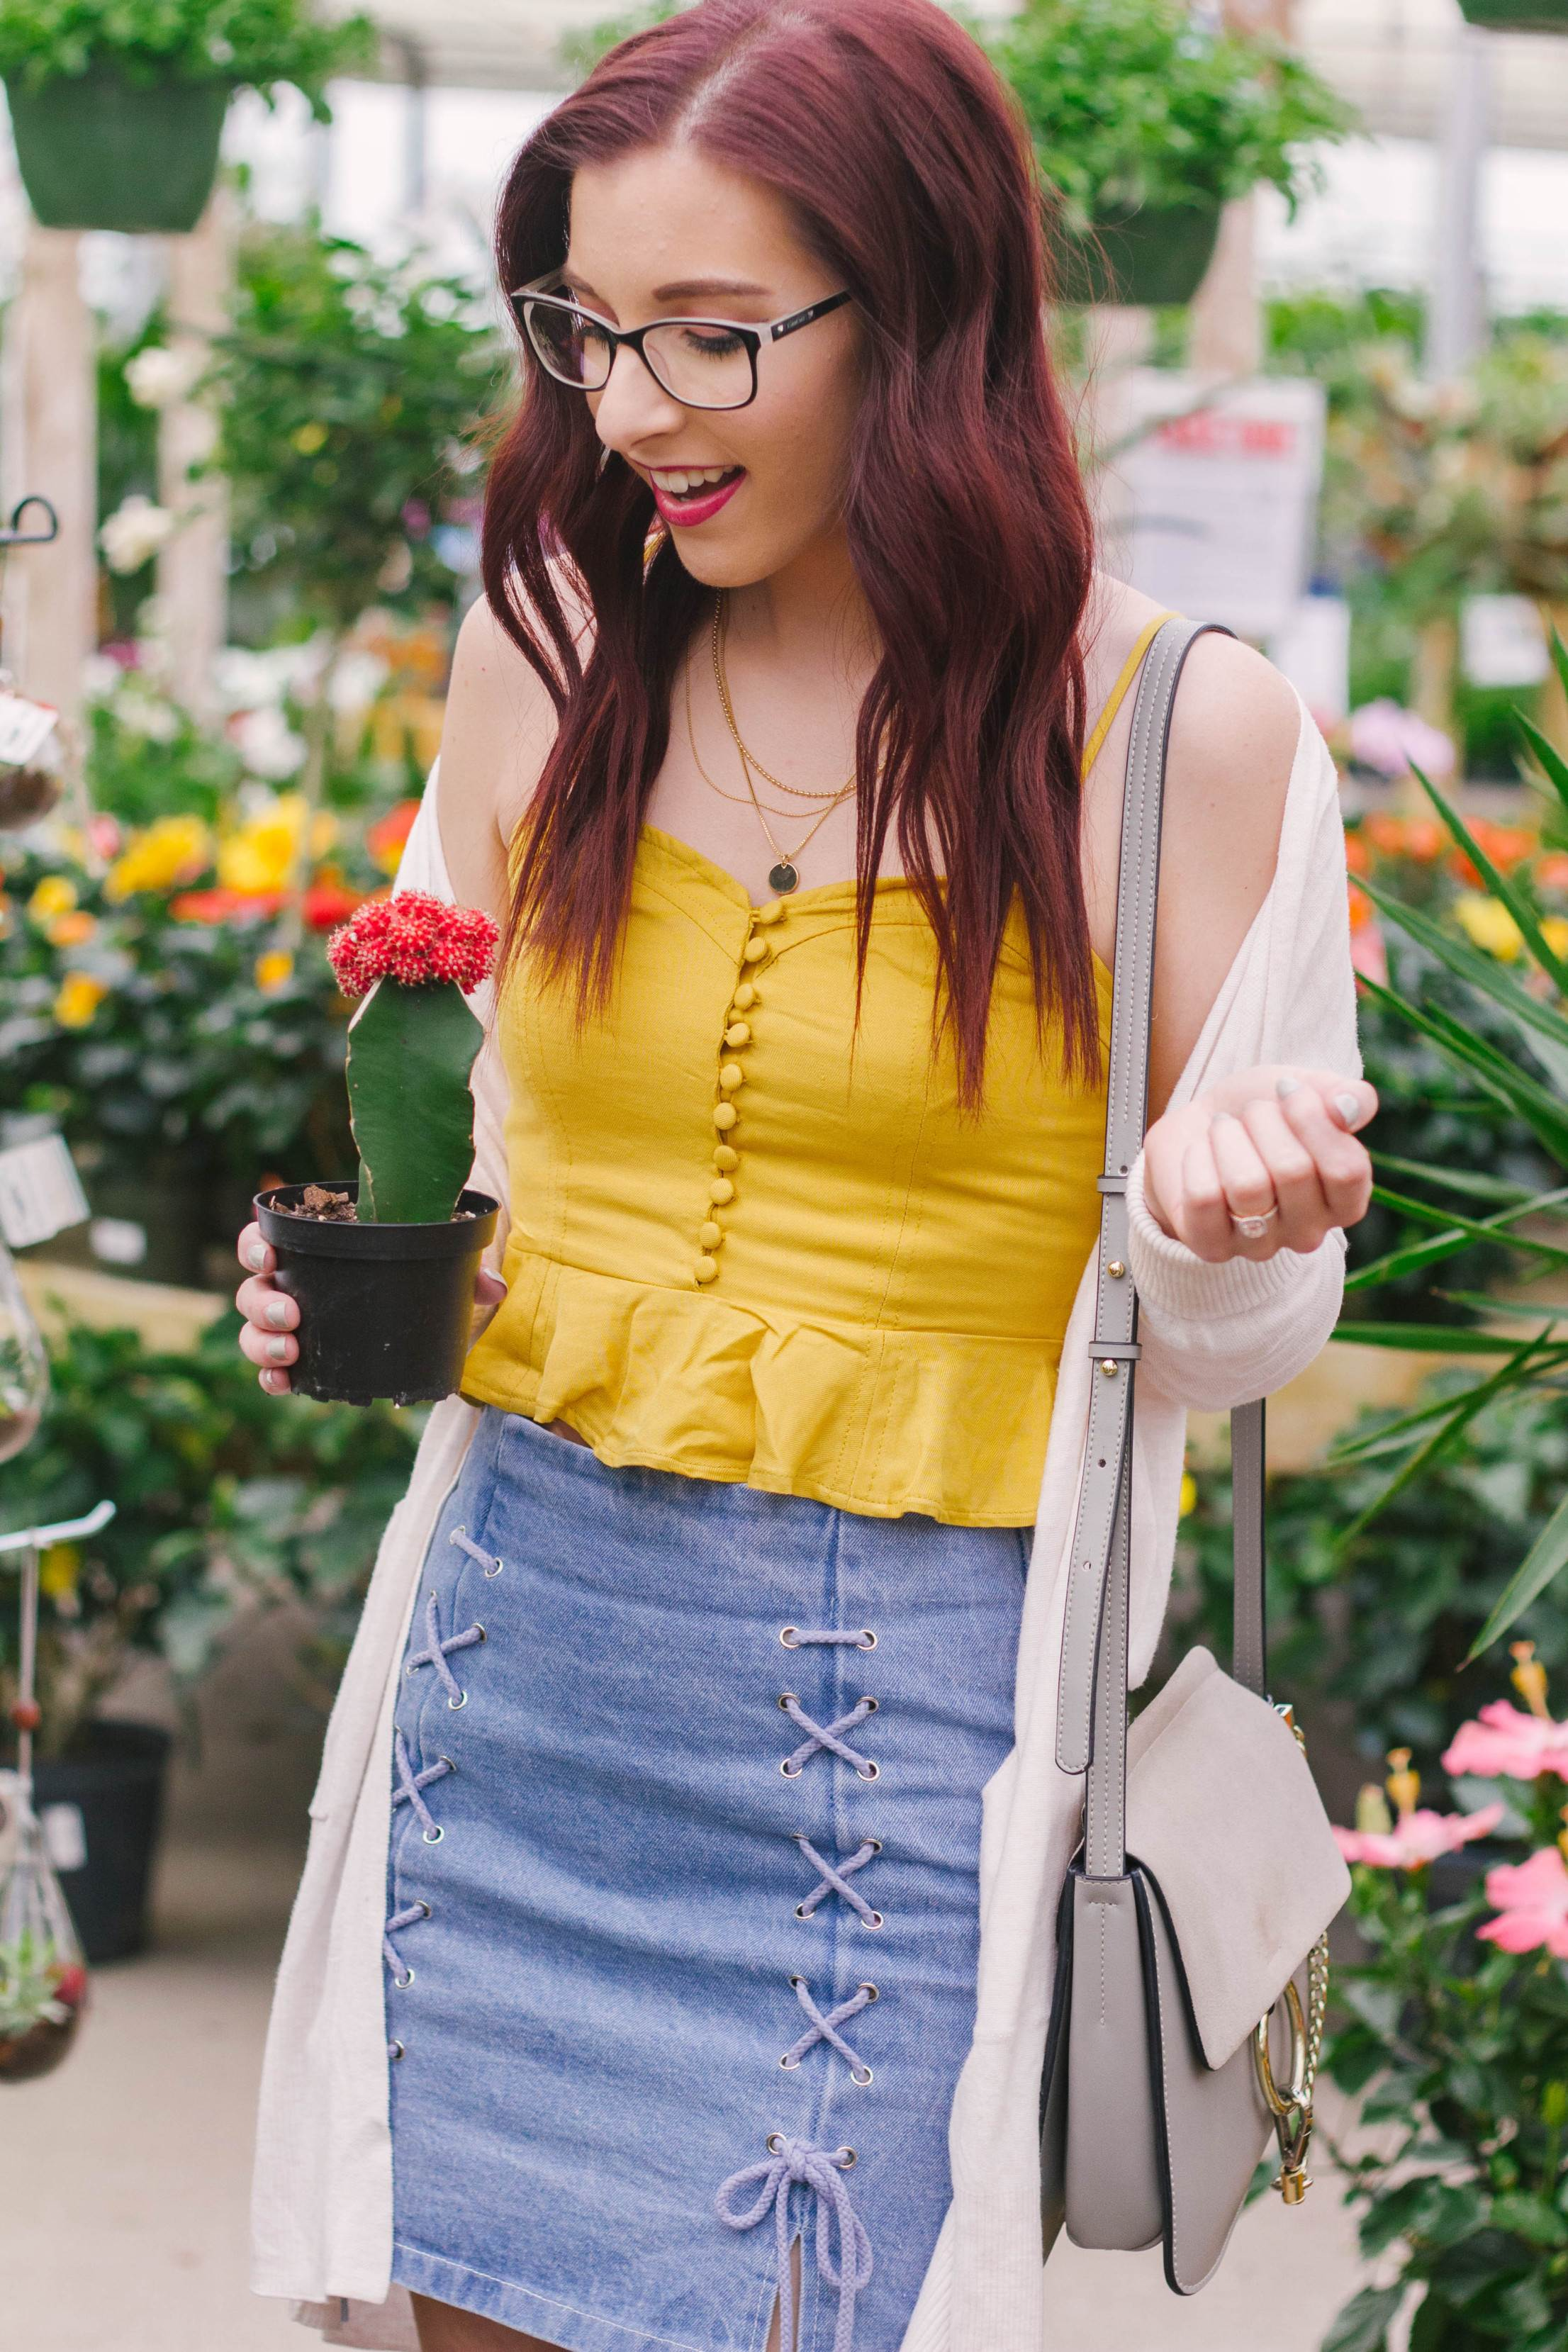 5 Tips to Brighten Your Casual Spring Closet